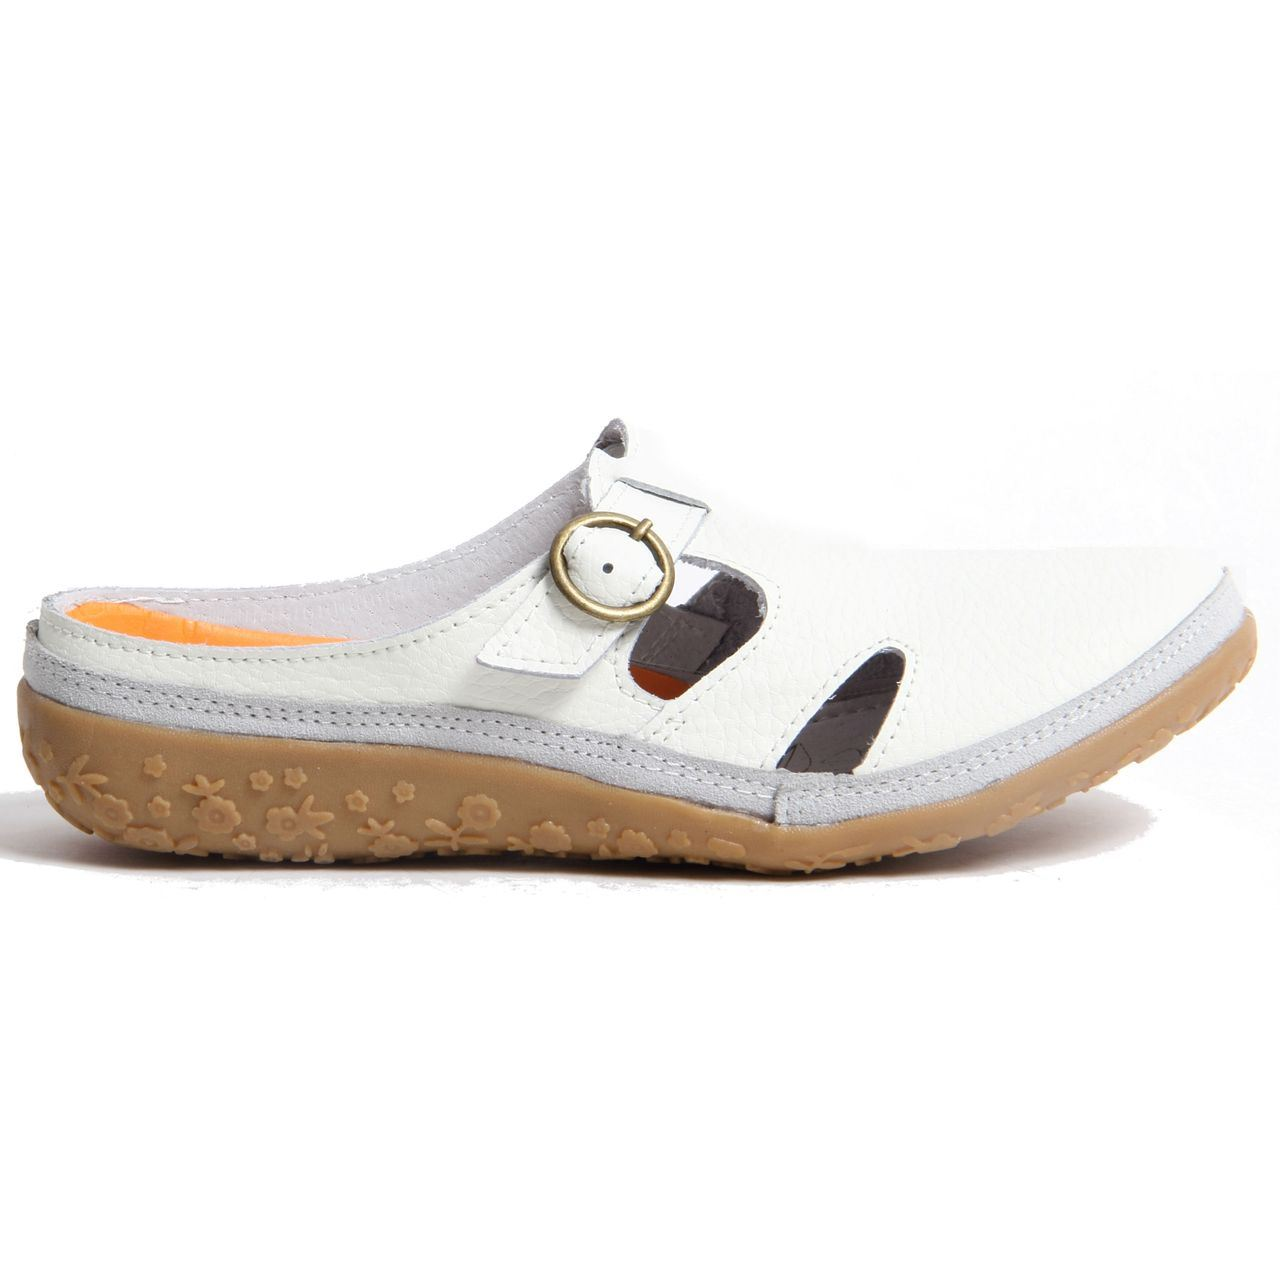 womens slip on open back mules genuine leather